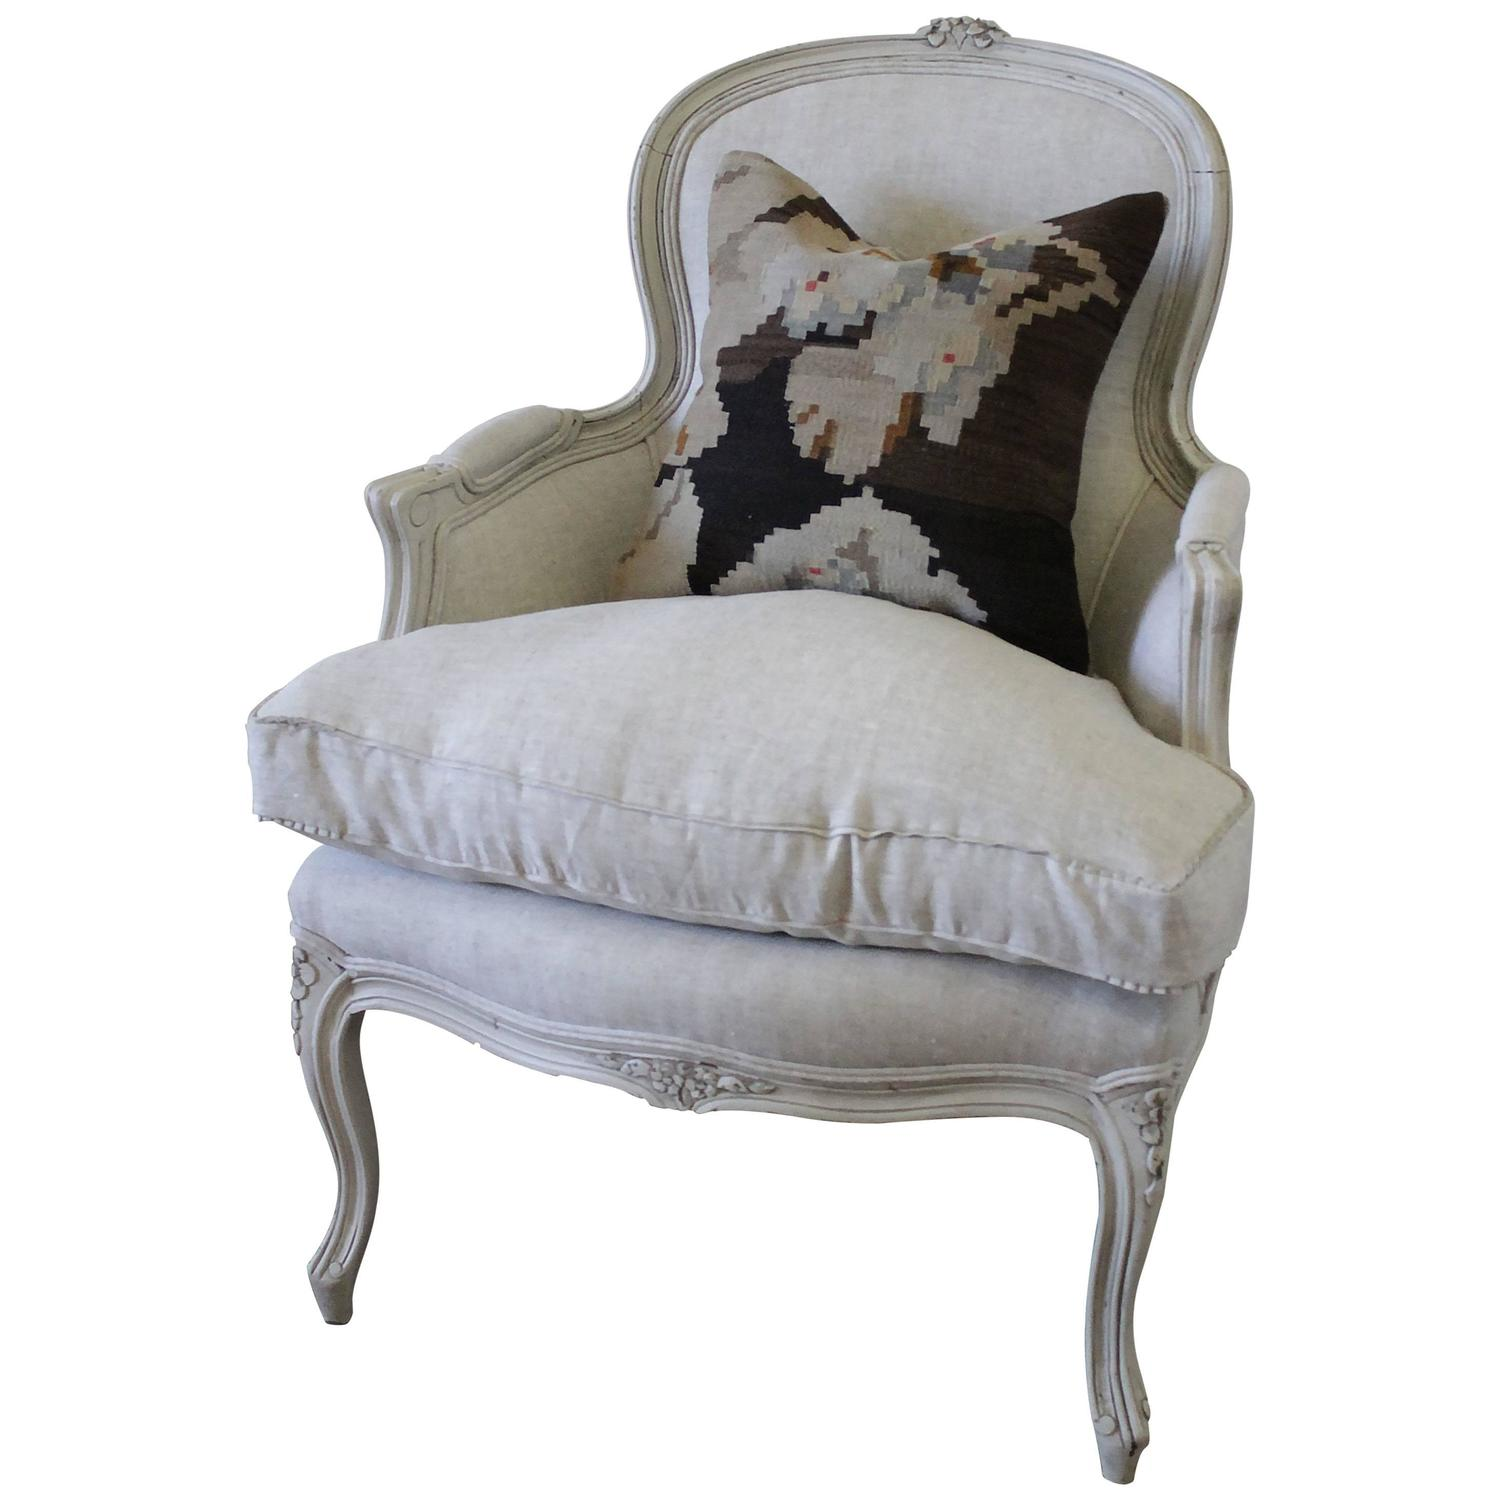 antique country french painted bergere chair in the louis xv style for sale at 1stdibs. Black Bedroom Furniture Sets. Home Design Ideas